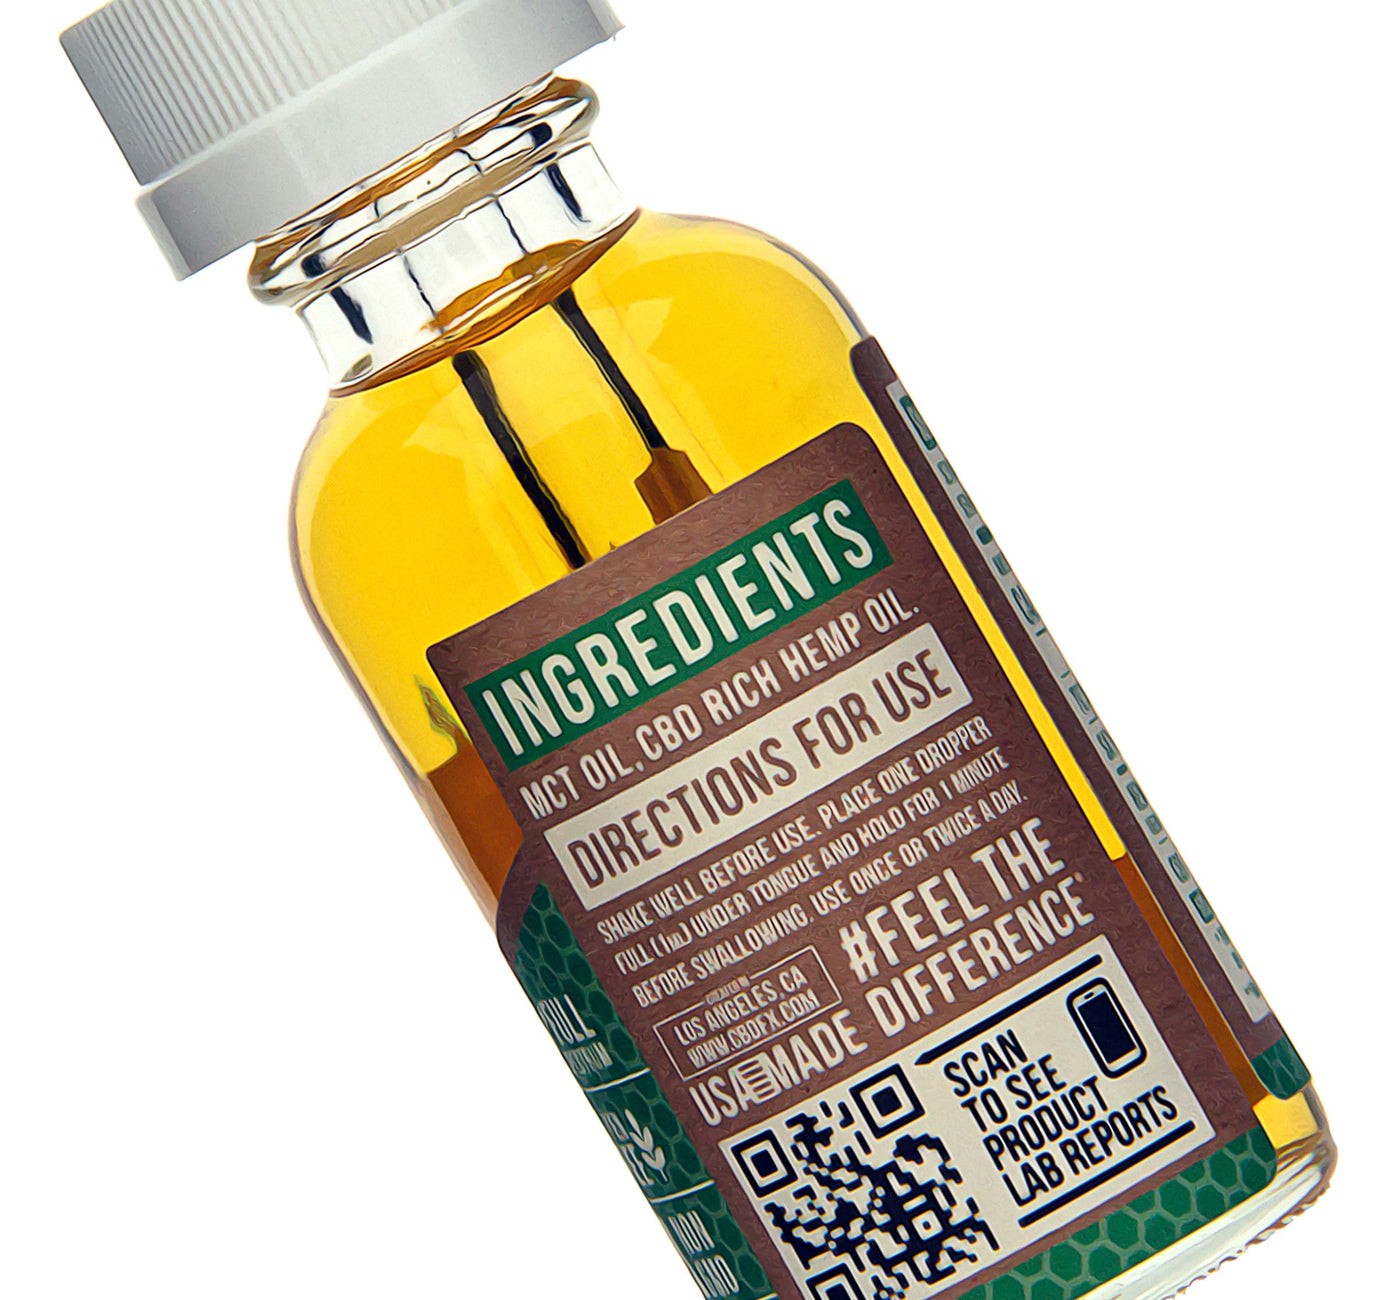 CBDfx CBD Tincture Oil 500mg Ingredients Description